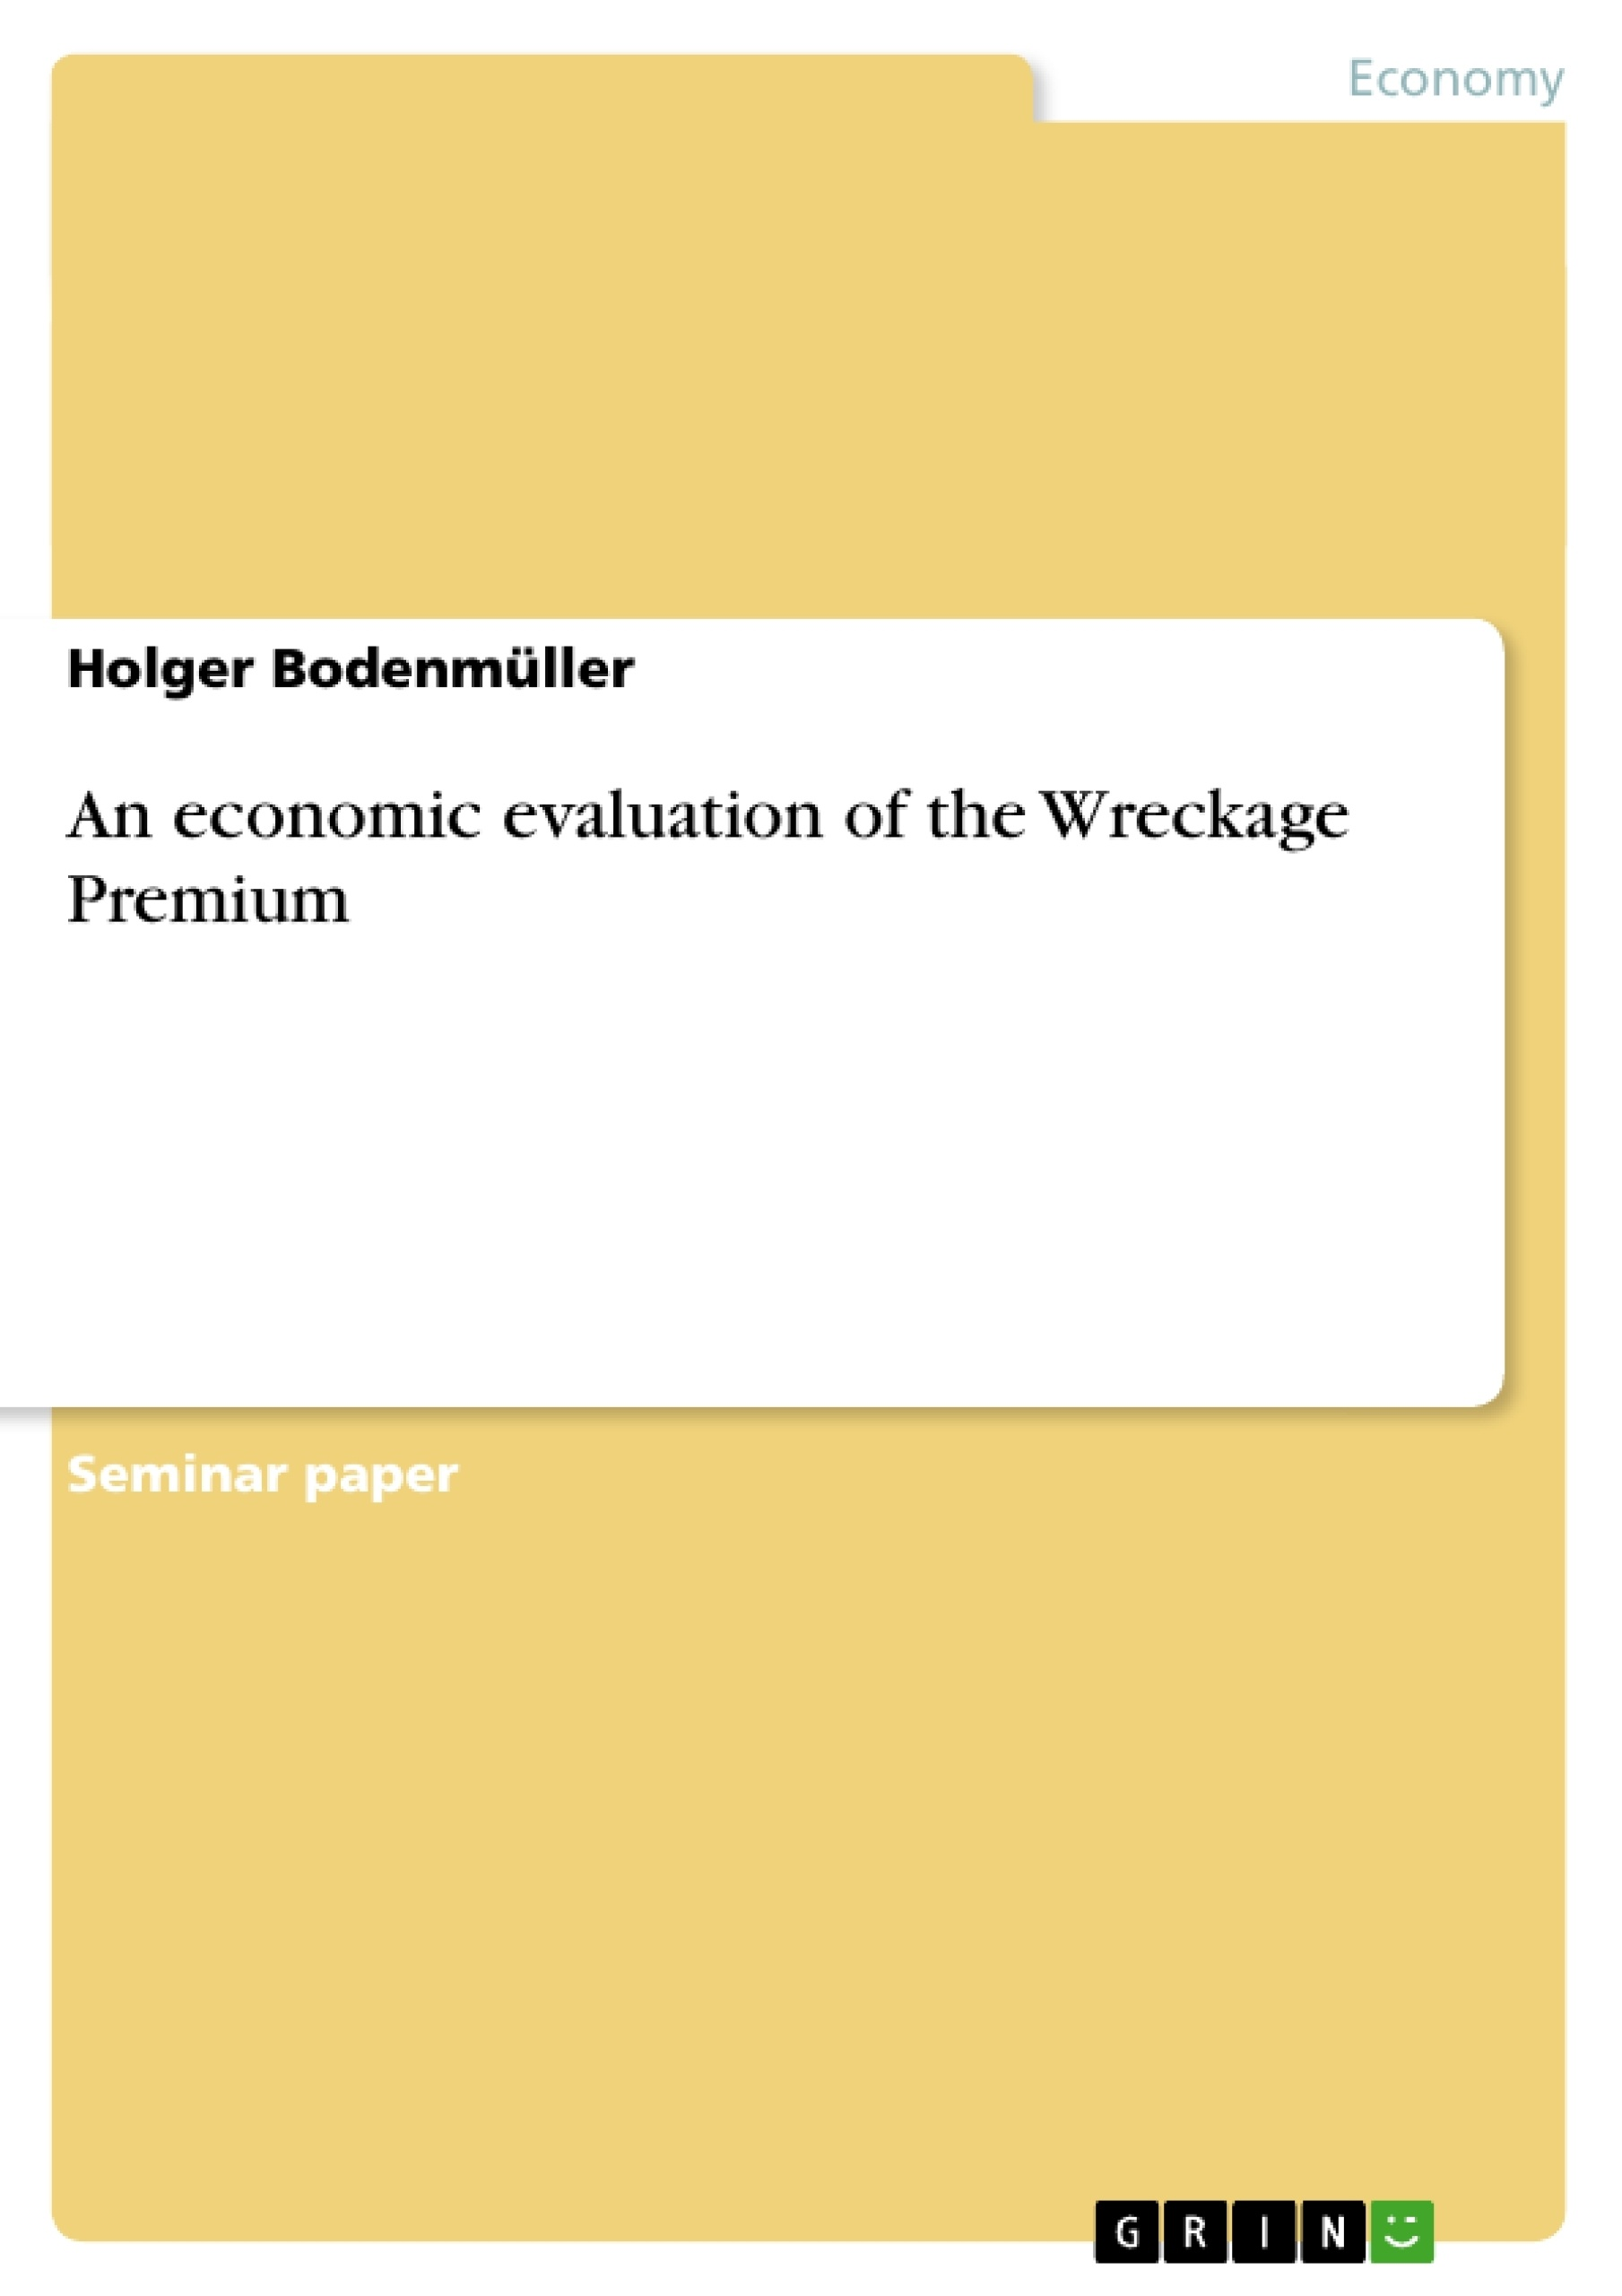 Title: An economic evaluation of the Wreckage Premium